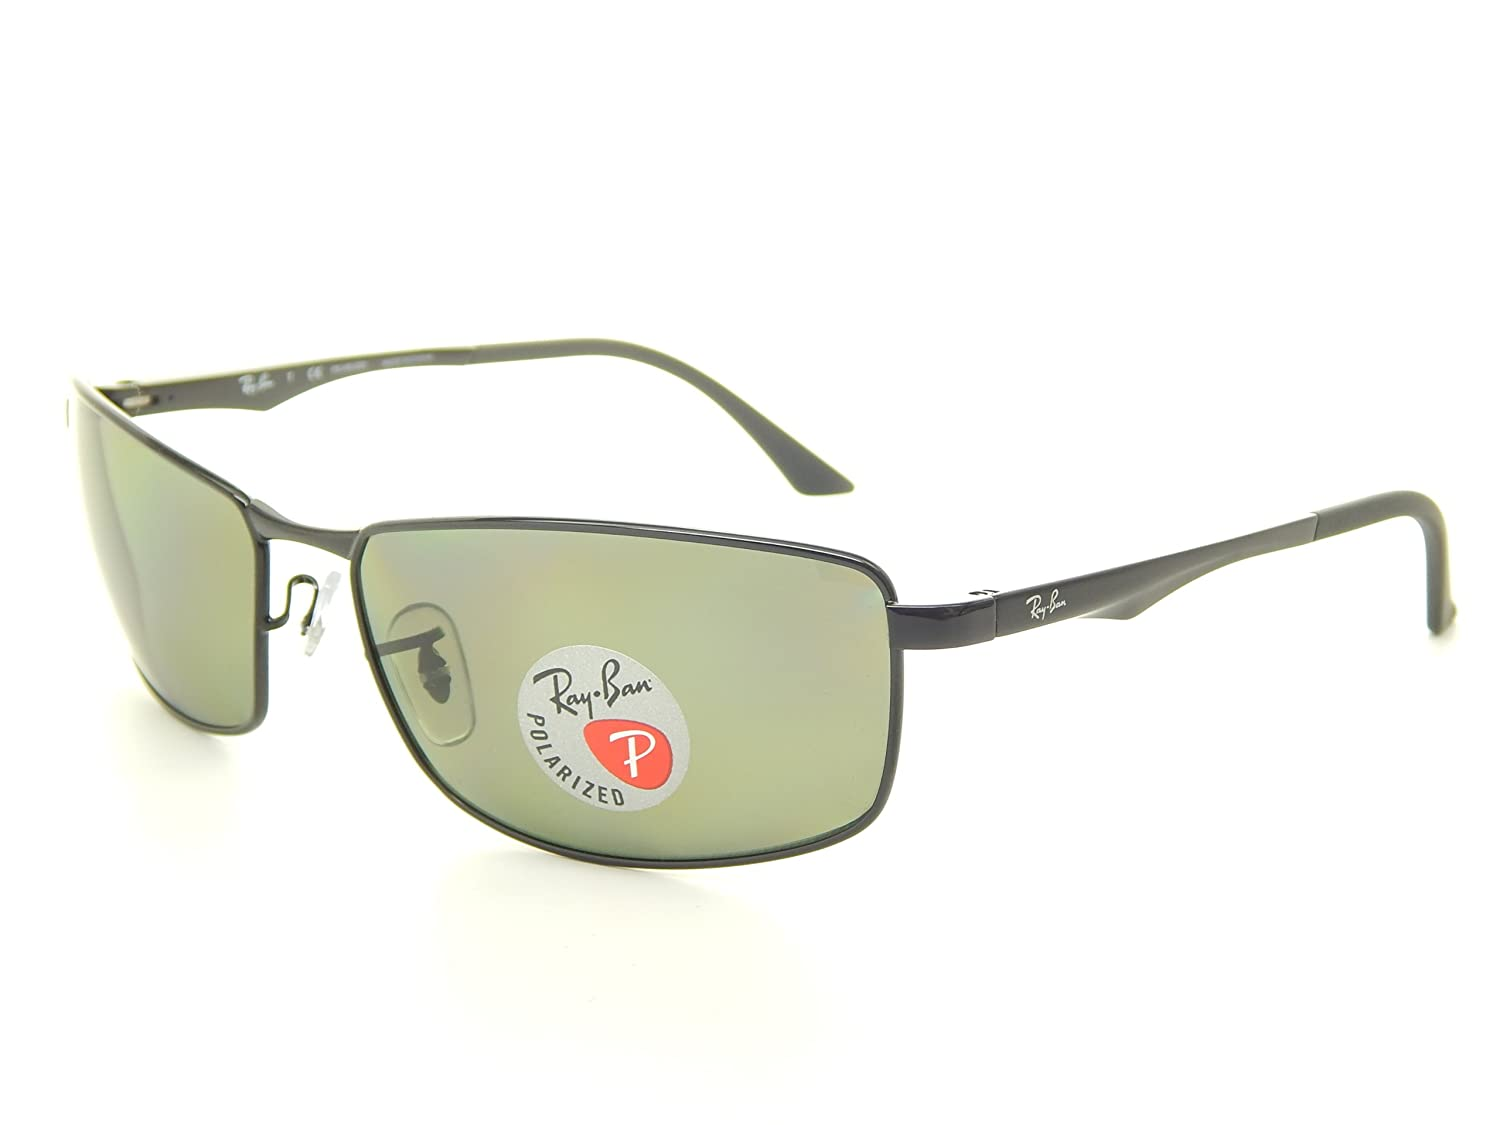 5bff0bb456b New Ray Ban RB3498 002 9A Black Polarized Green 61mm Sunglasses   Amazon.co.uk  Clothing